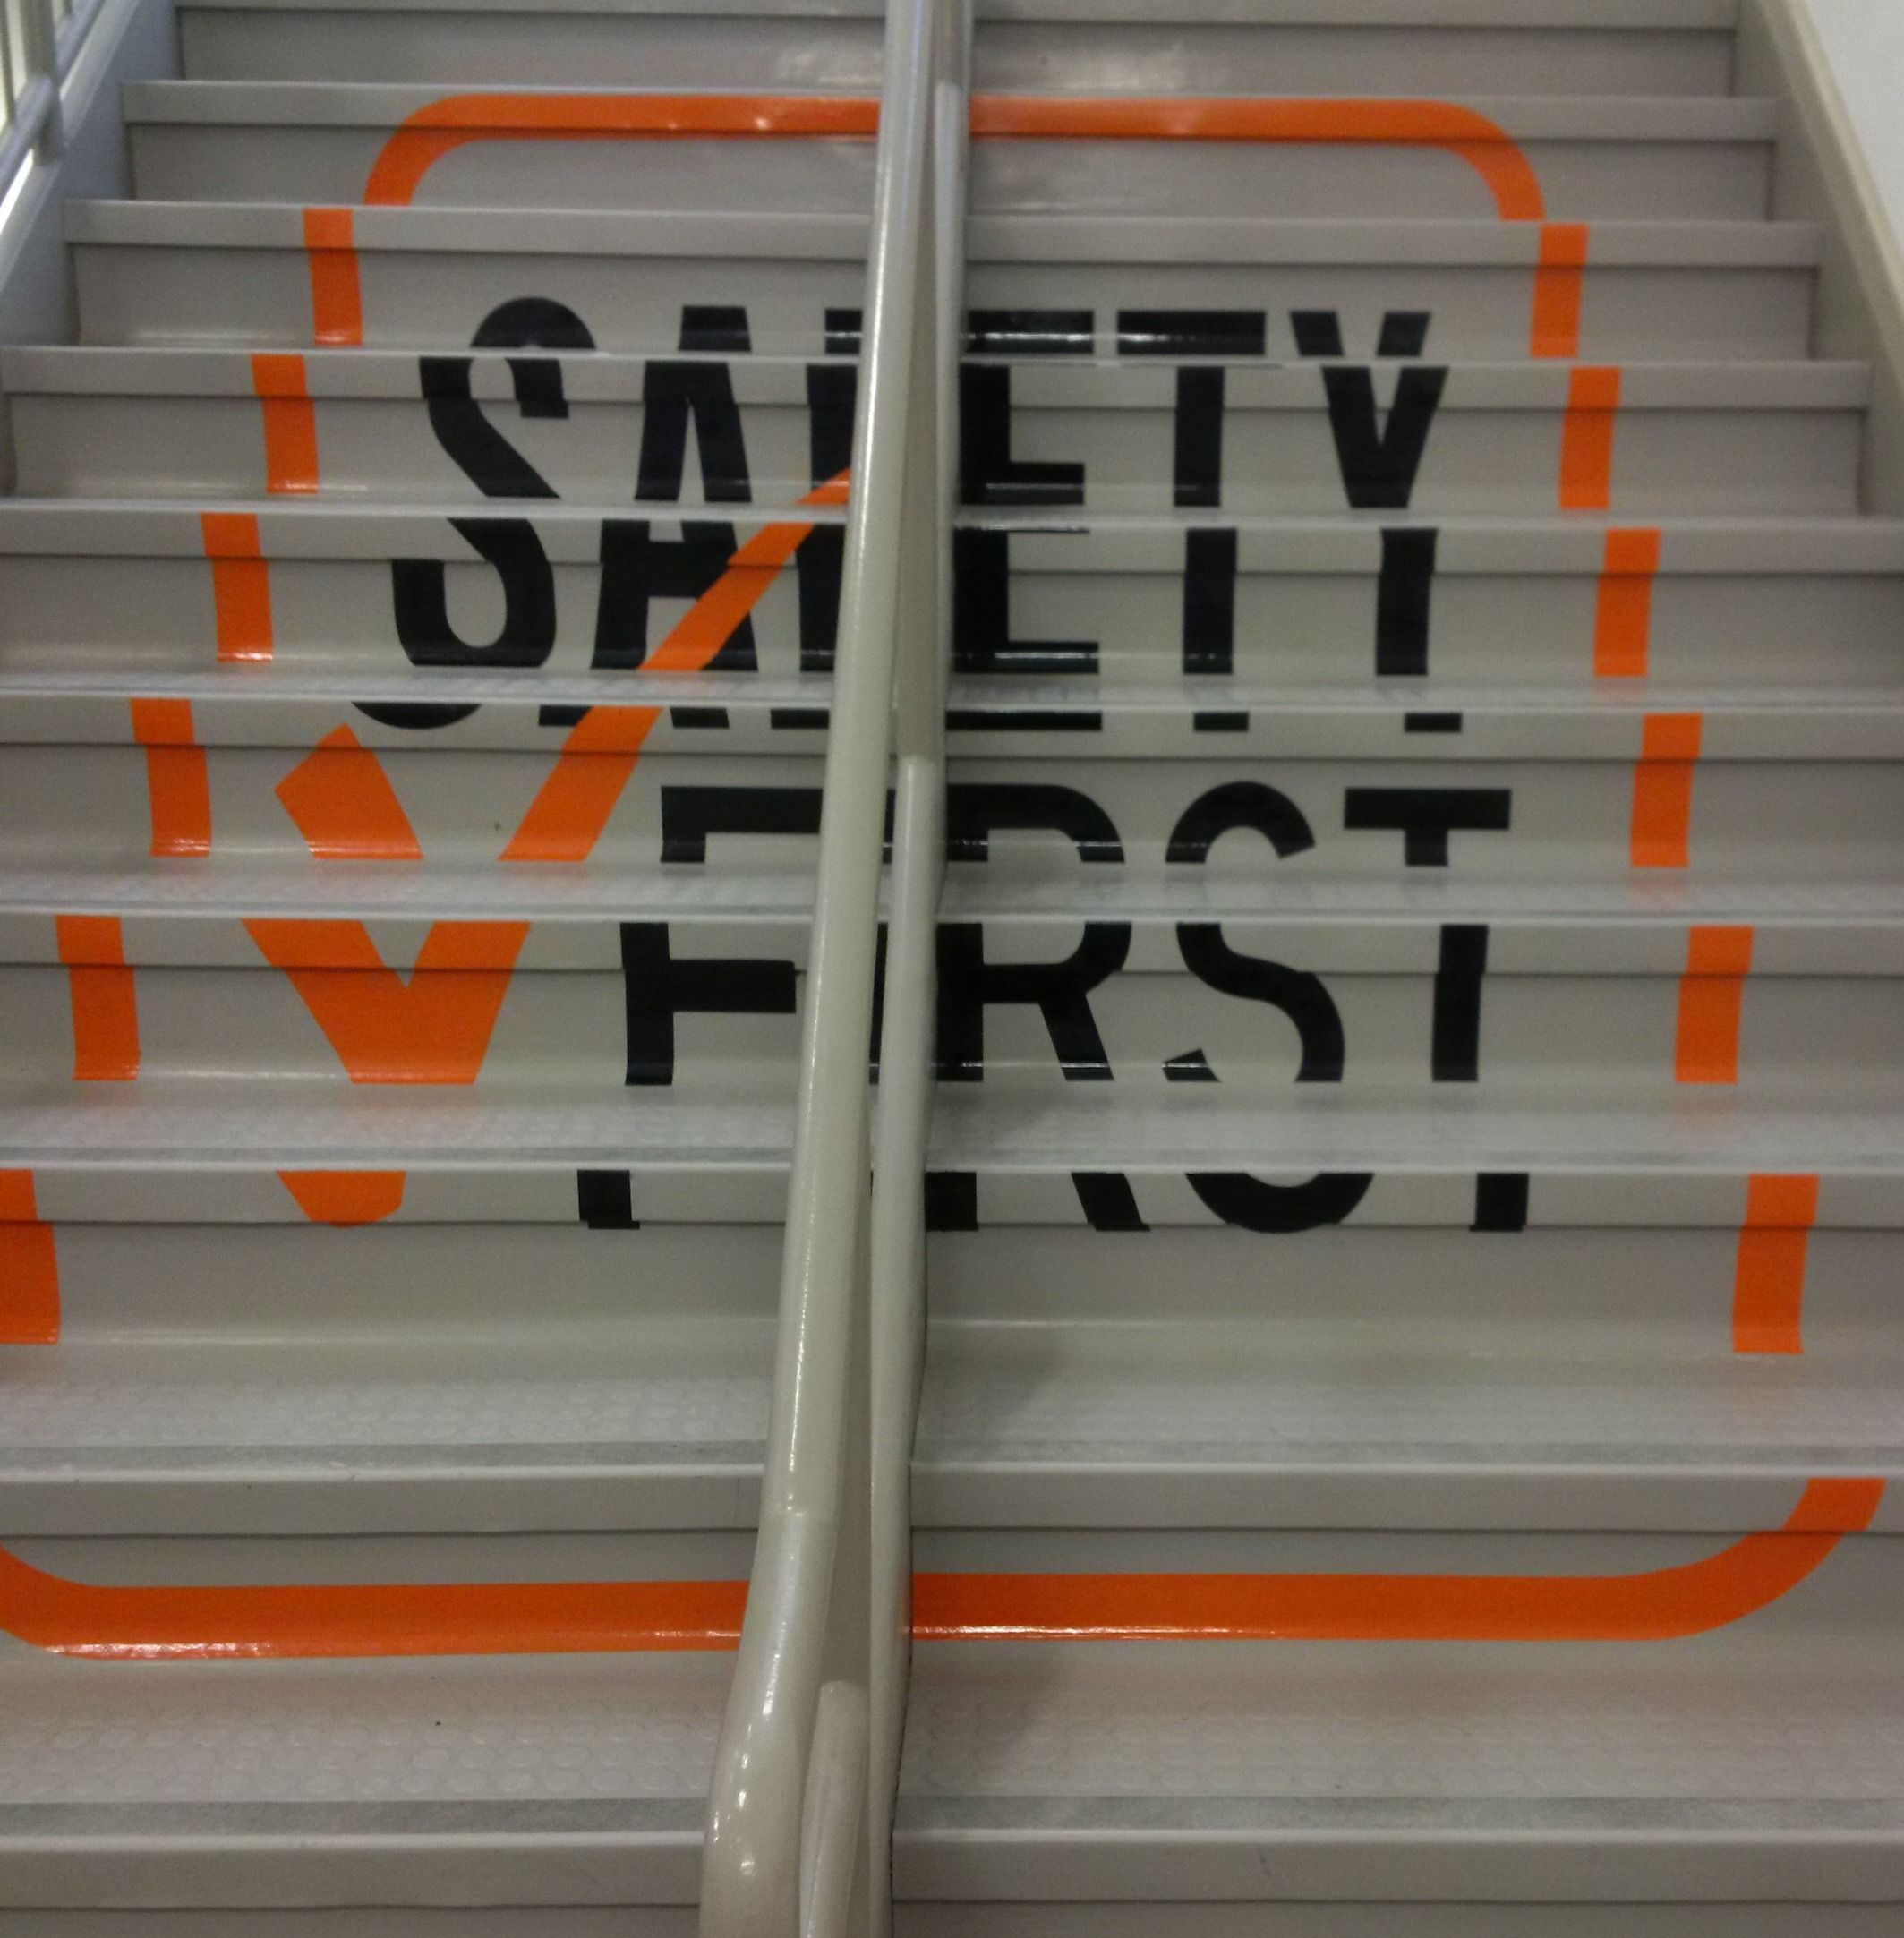 Hand-painted safety message on stairs